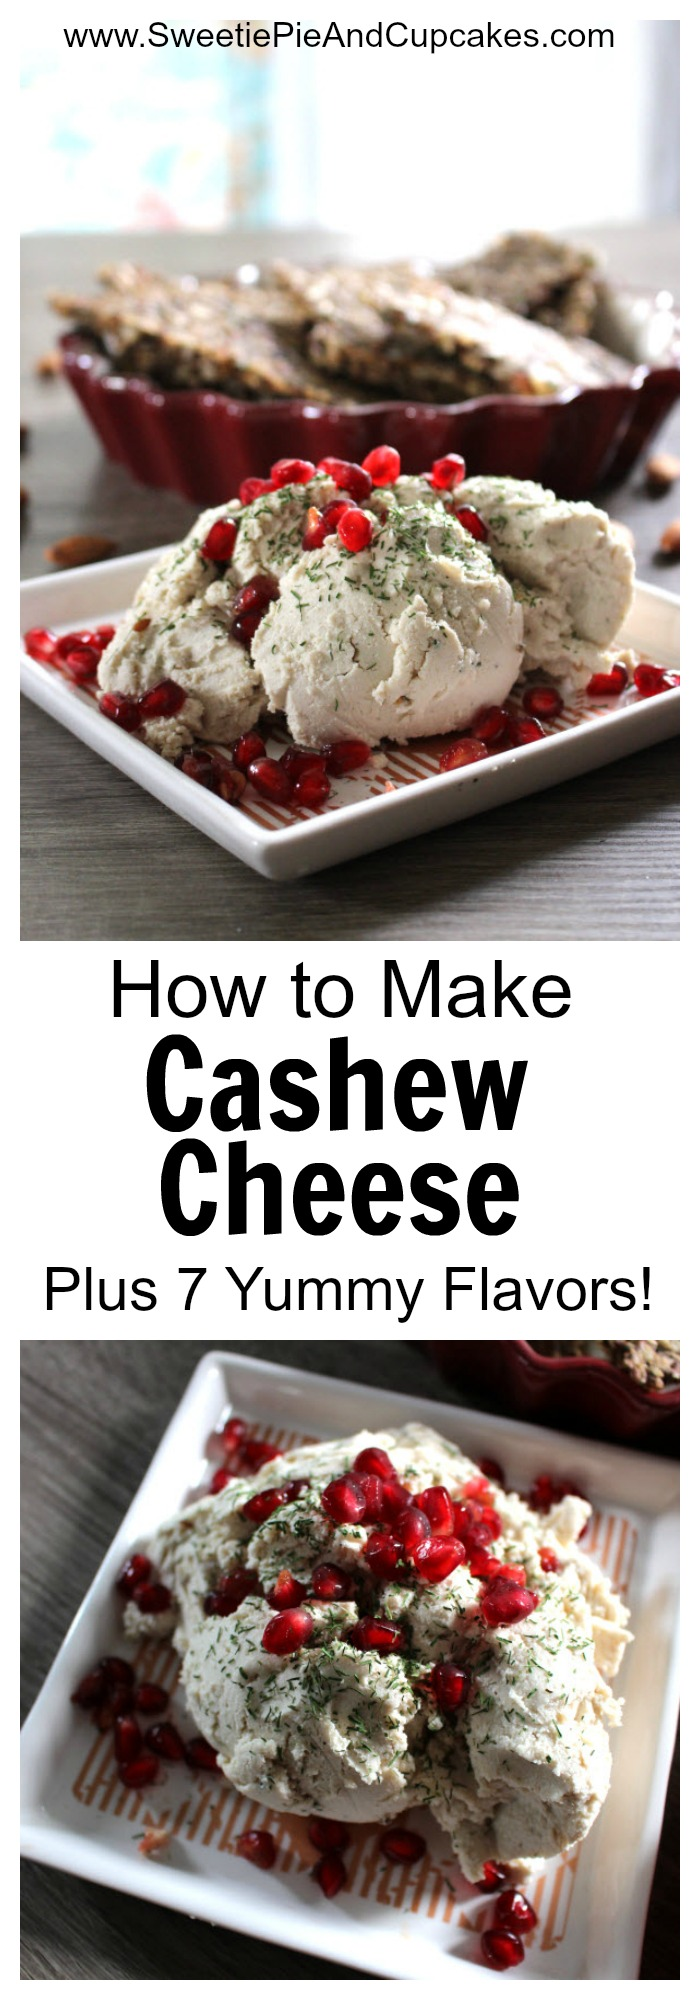 Learn to make yummy and healthy Cashew Cheese! Includes seven different flavors!